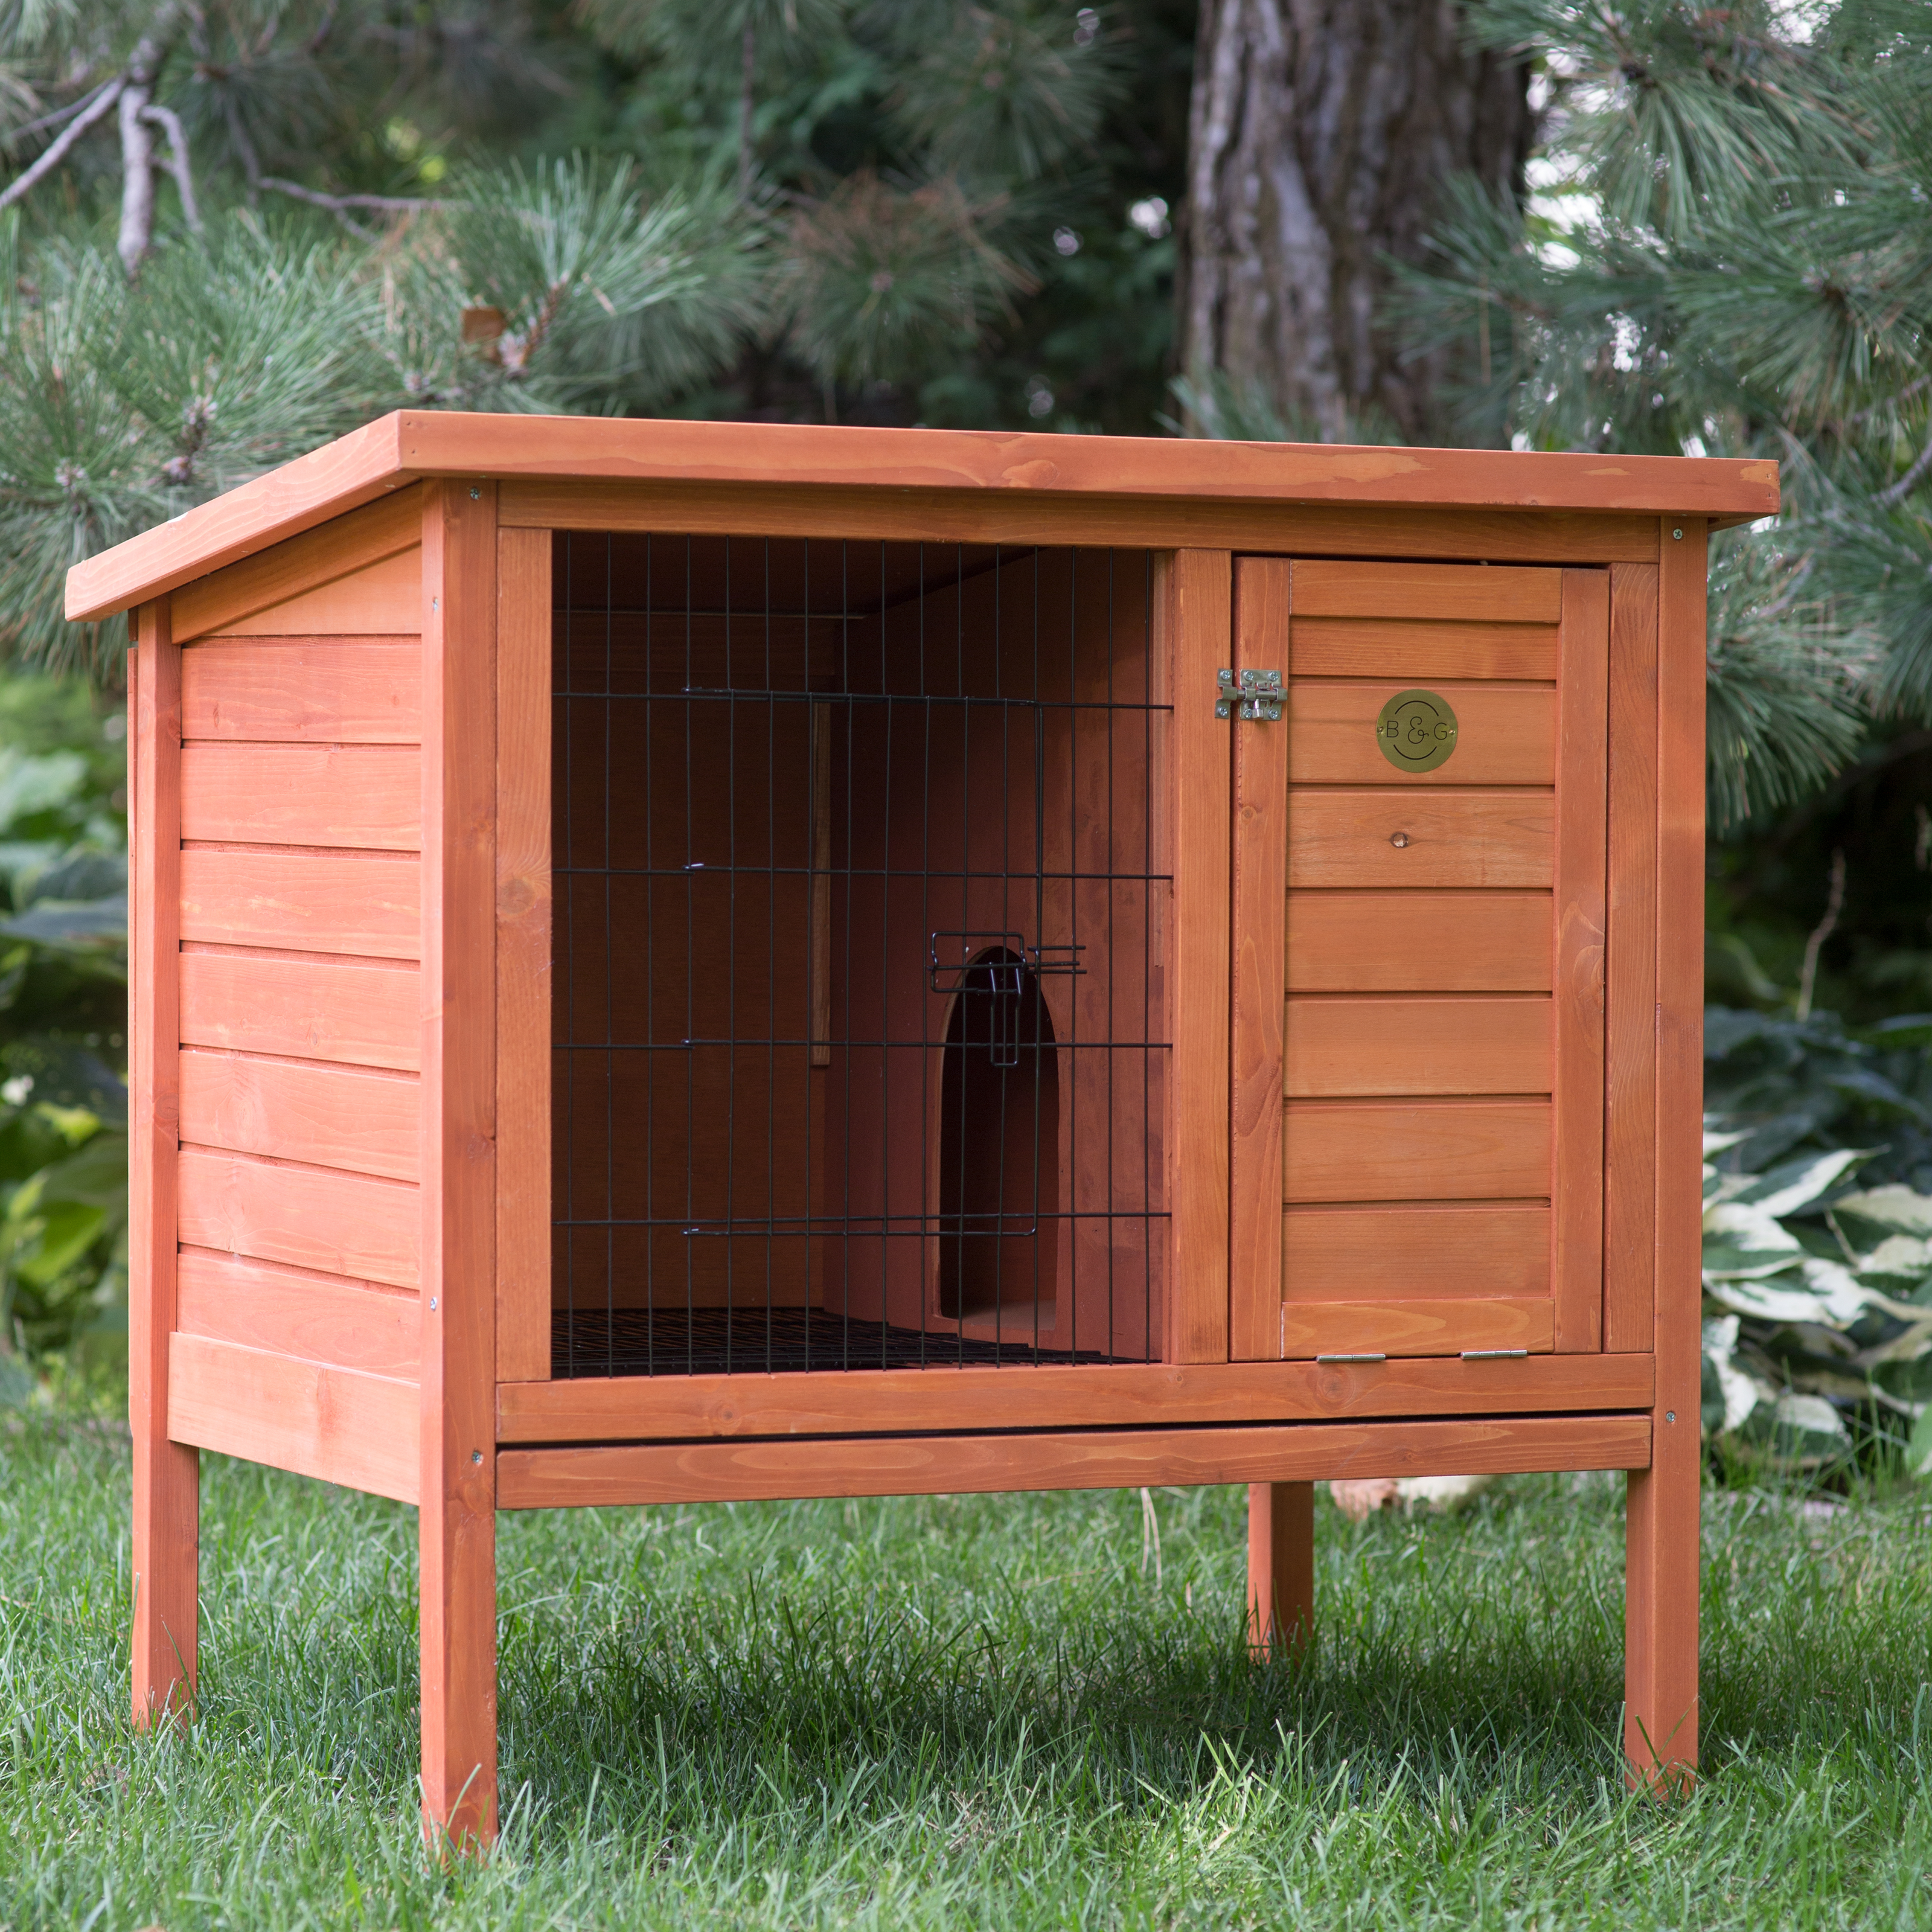 boomer george elevated outdoor rabbit hutch natural. Black Bedroom Furniture Sets. Home Design Ideas